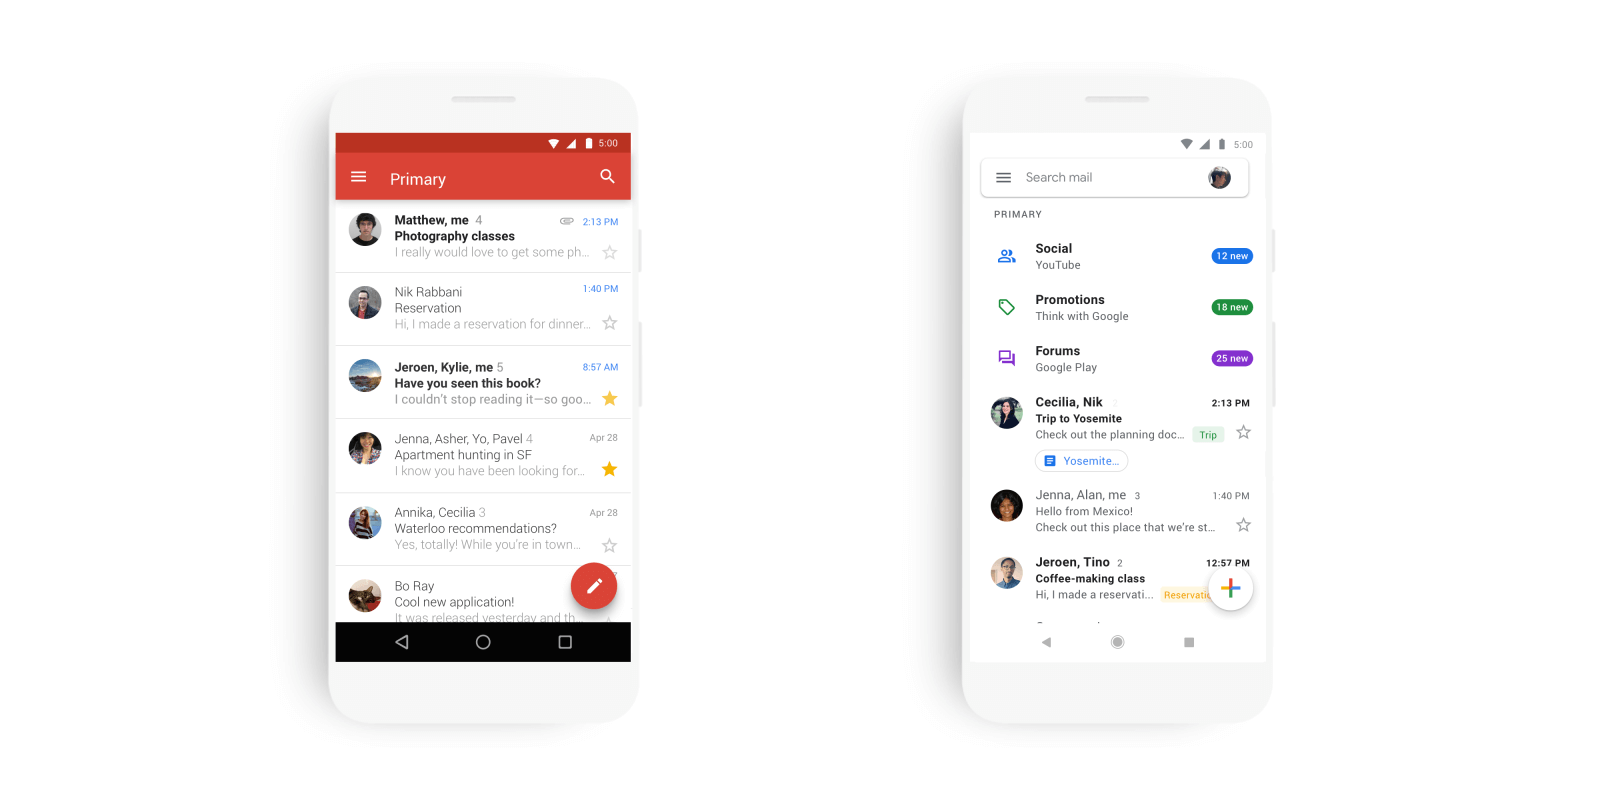 Gmail before and after the redesign 2015